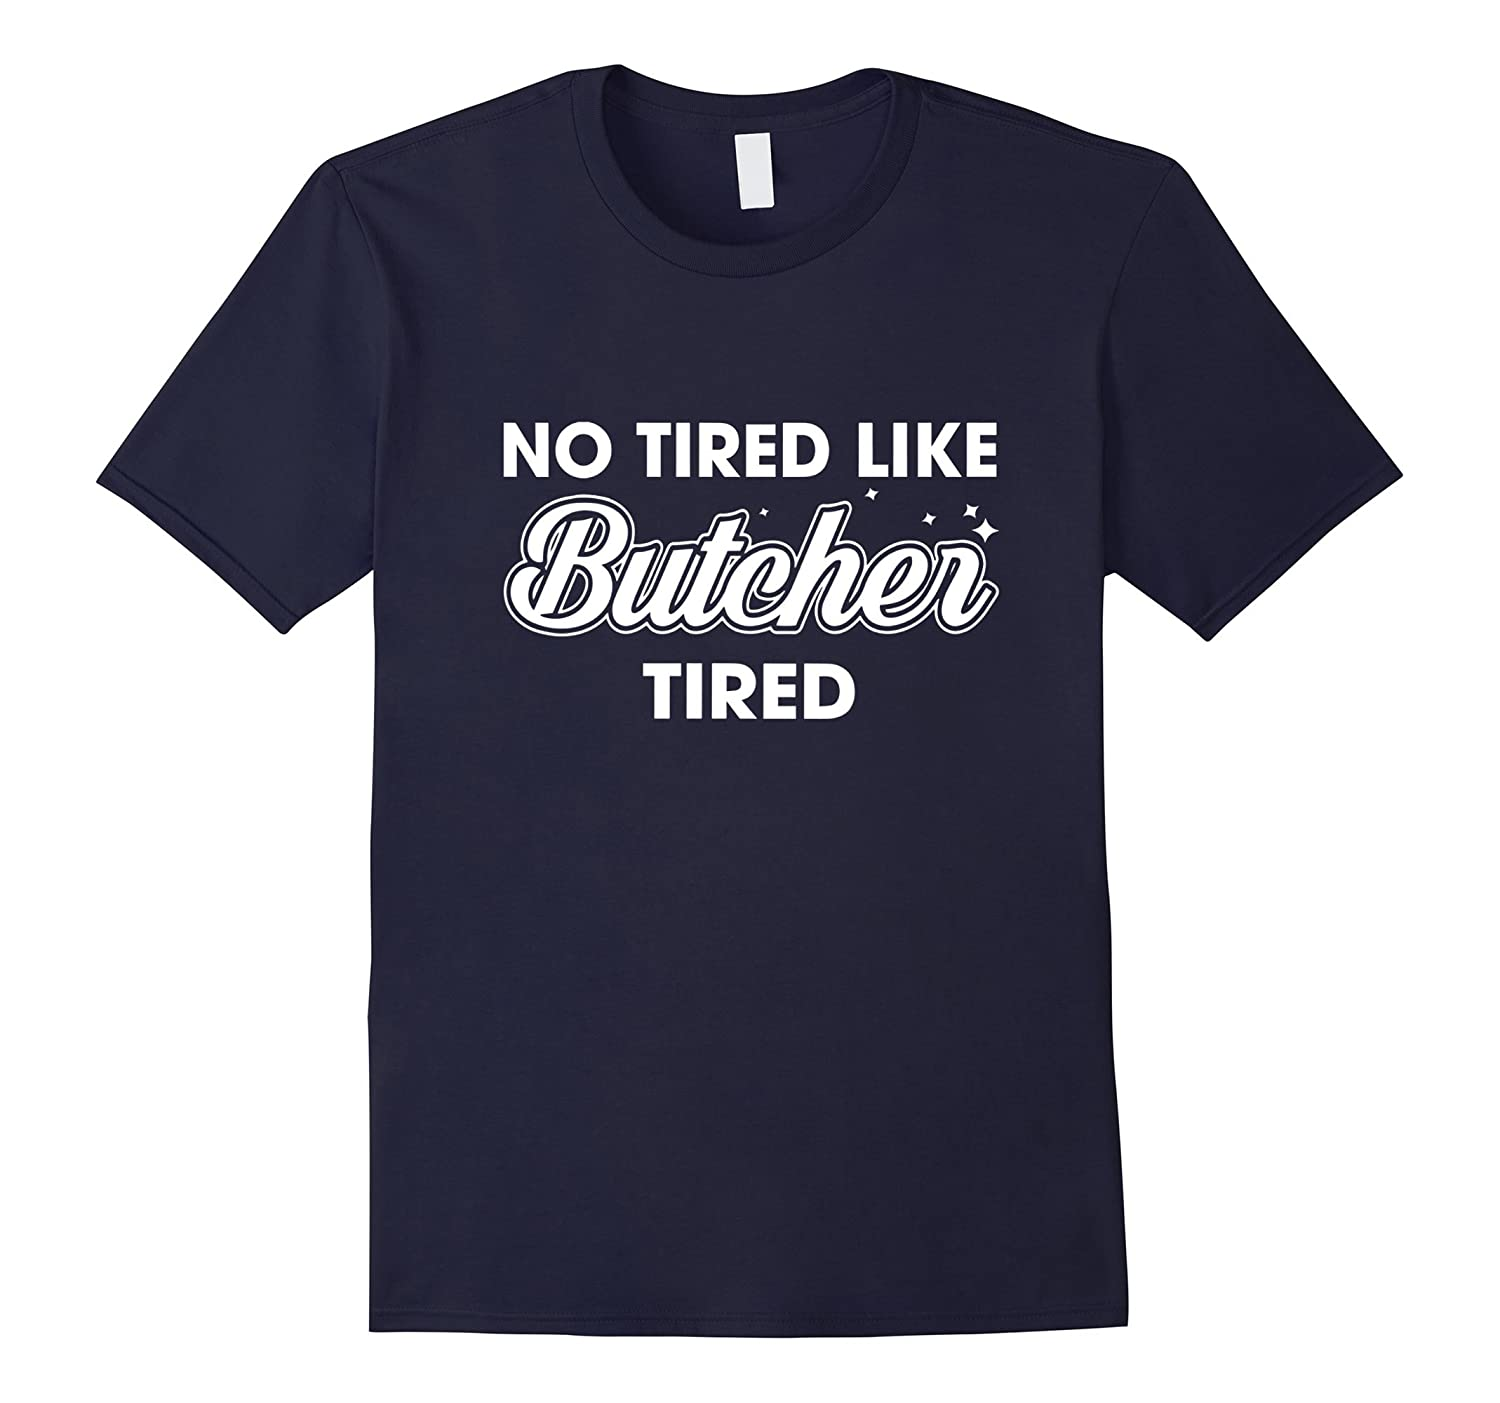 No tired like Butcher tired T-shirt-TD